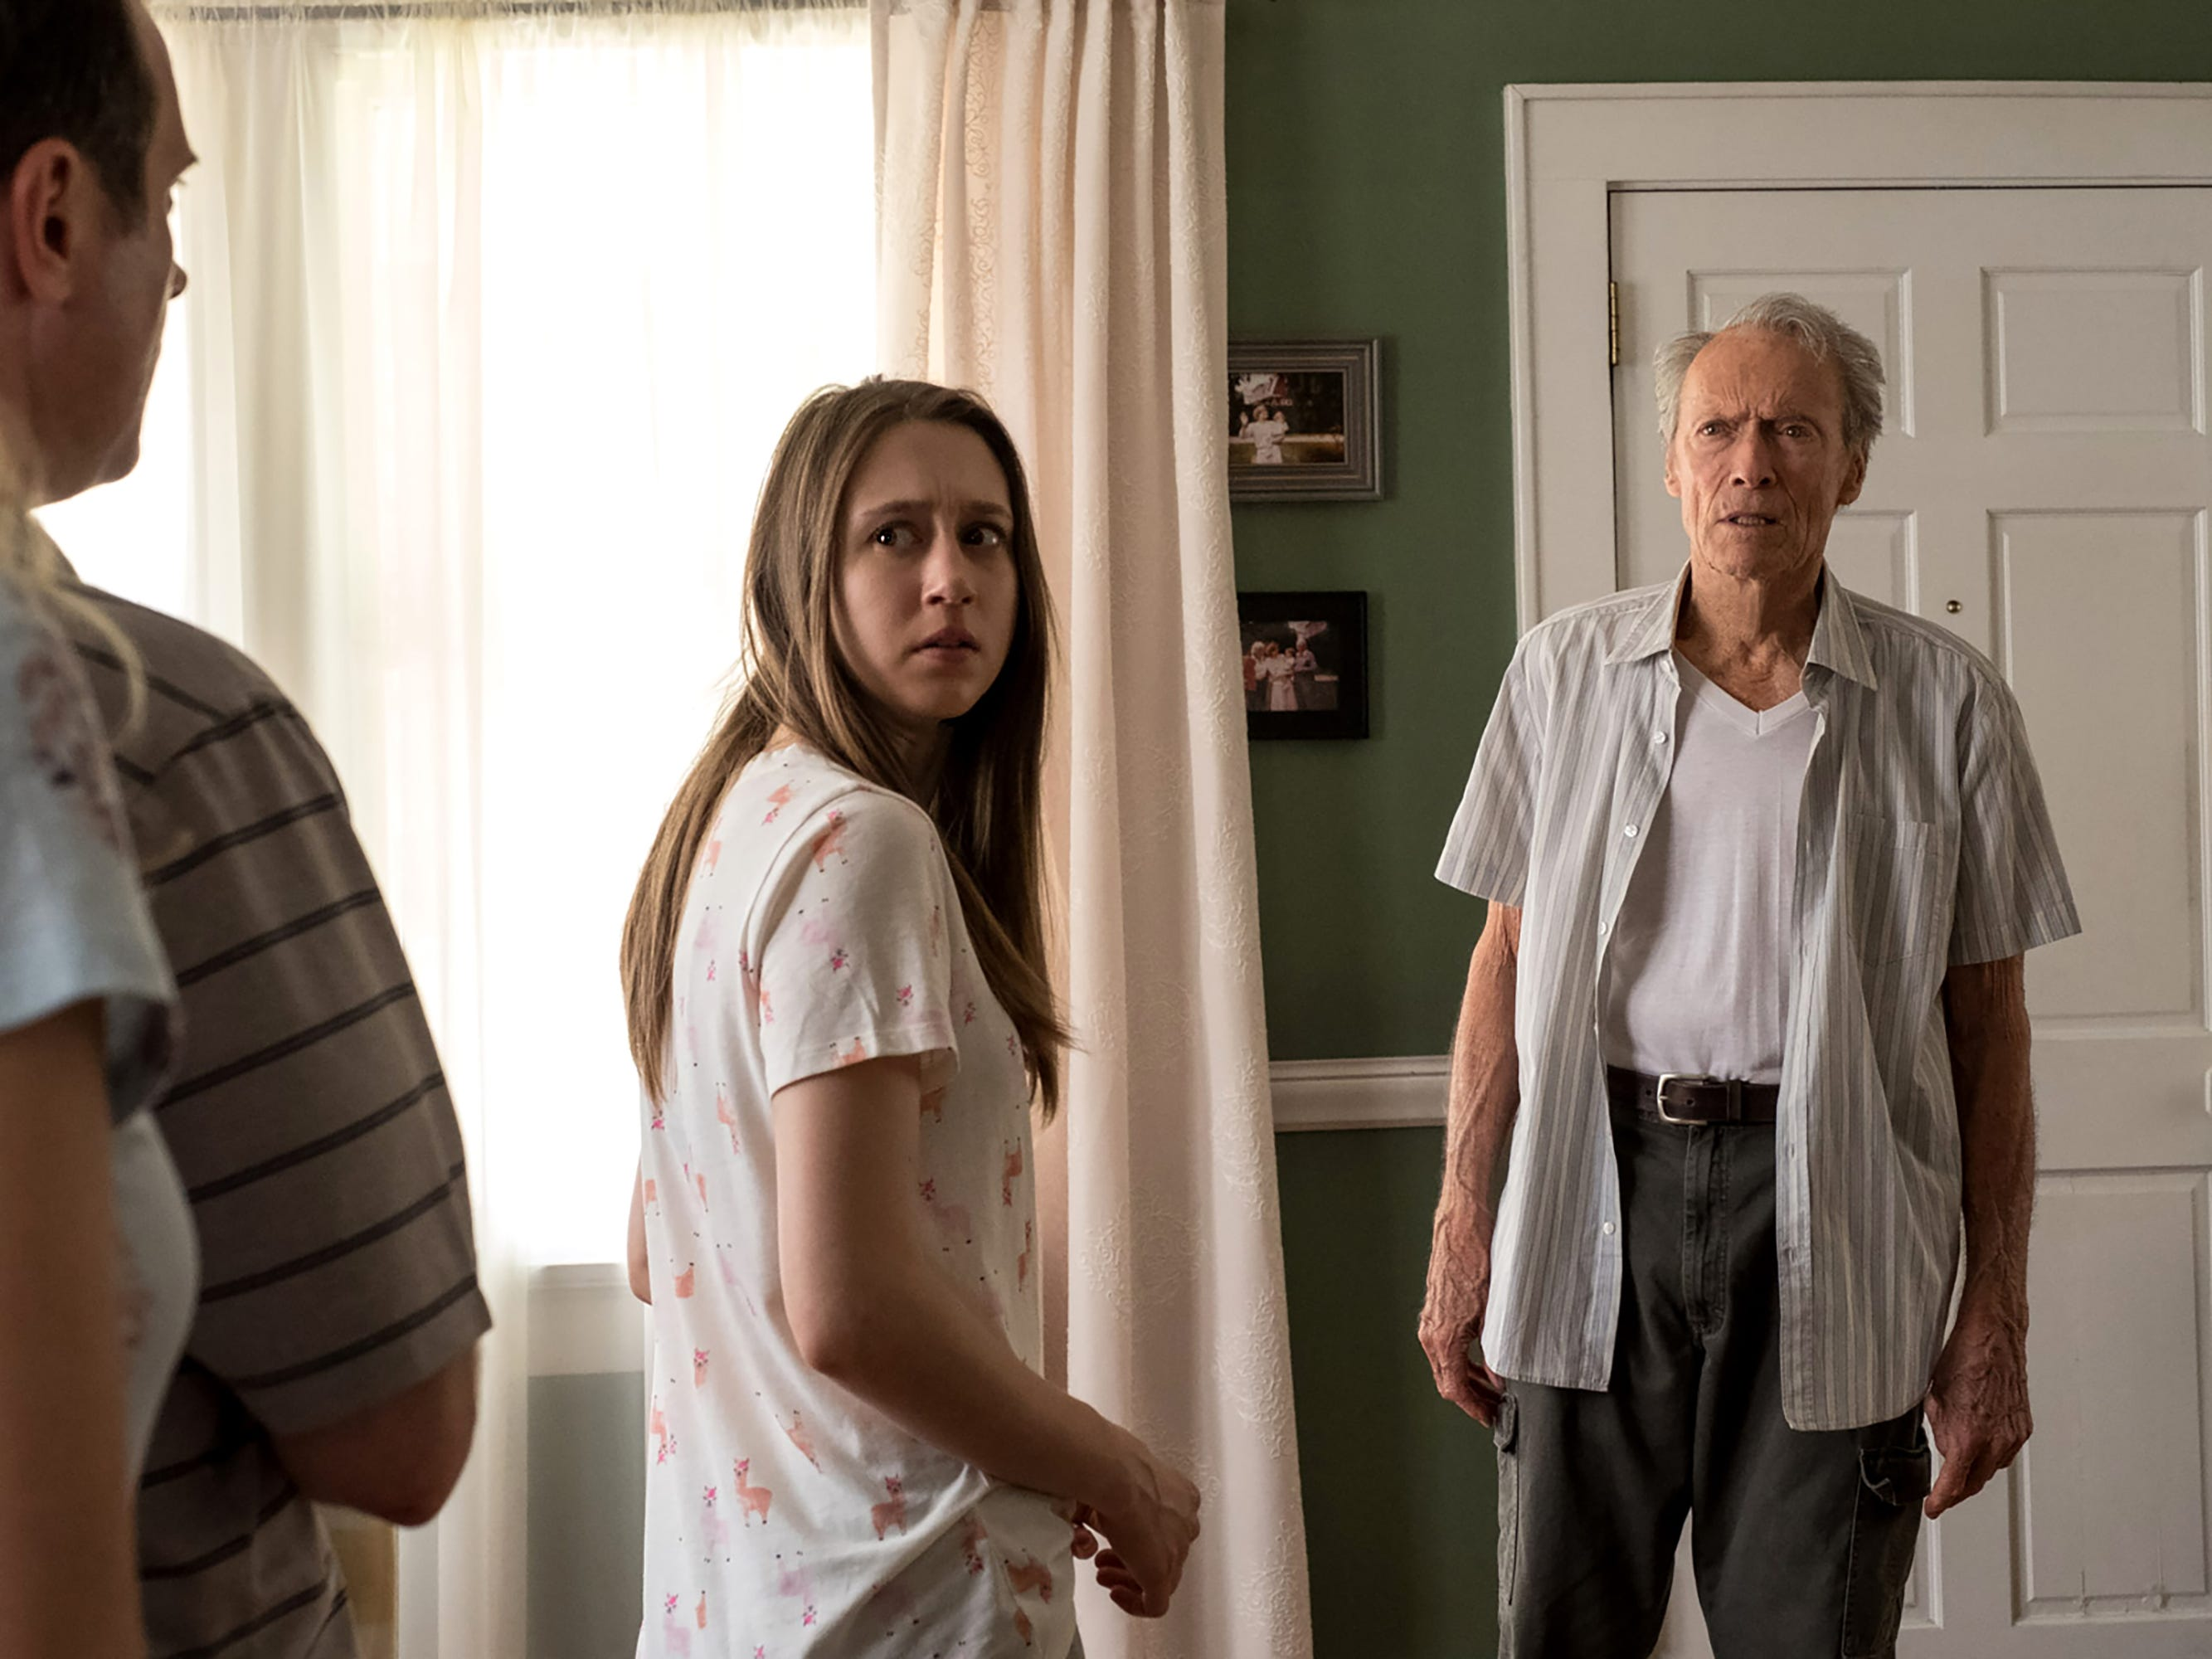 """Earl Stone (Clint Eastwood, right) tries to maintain a close relationship with granddaughter Ginny (Taissa Farmiga) in """"The Mule."""""""